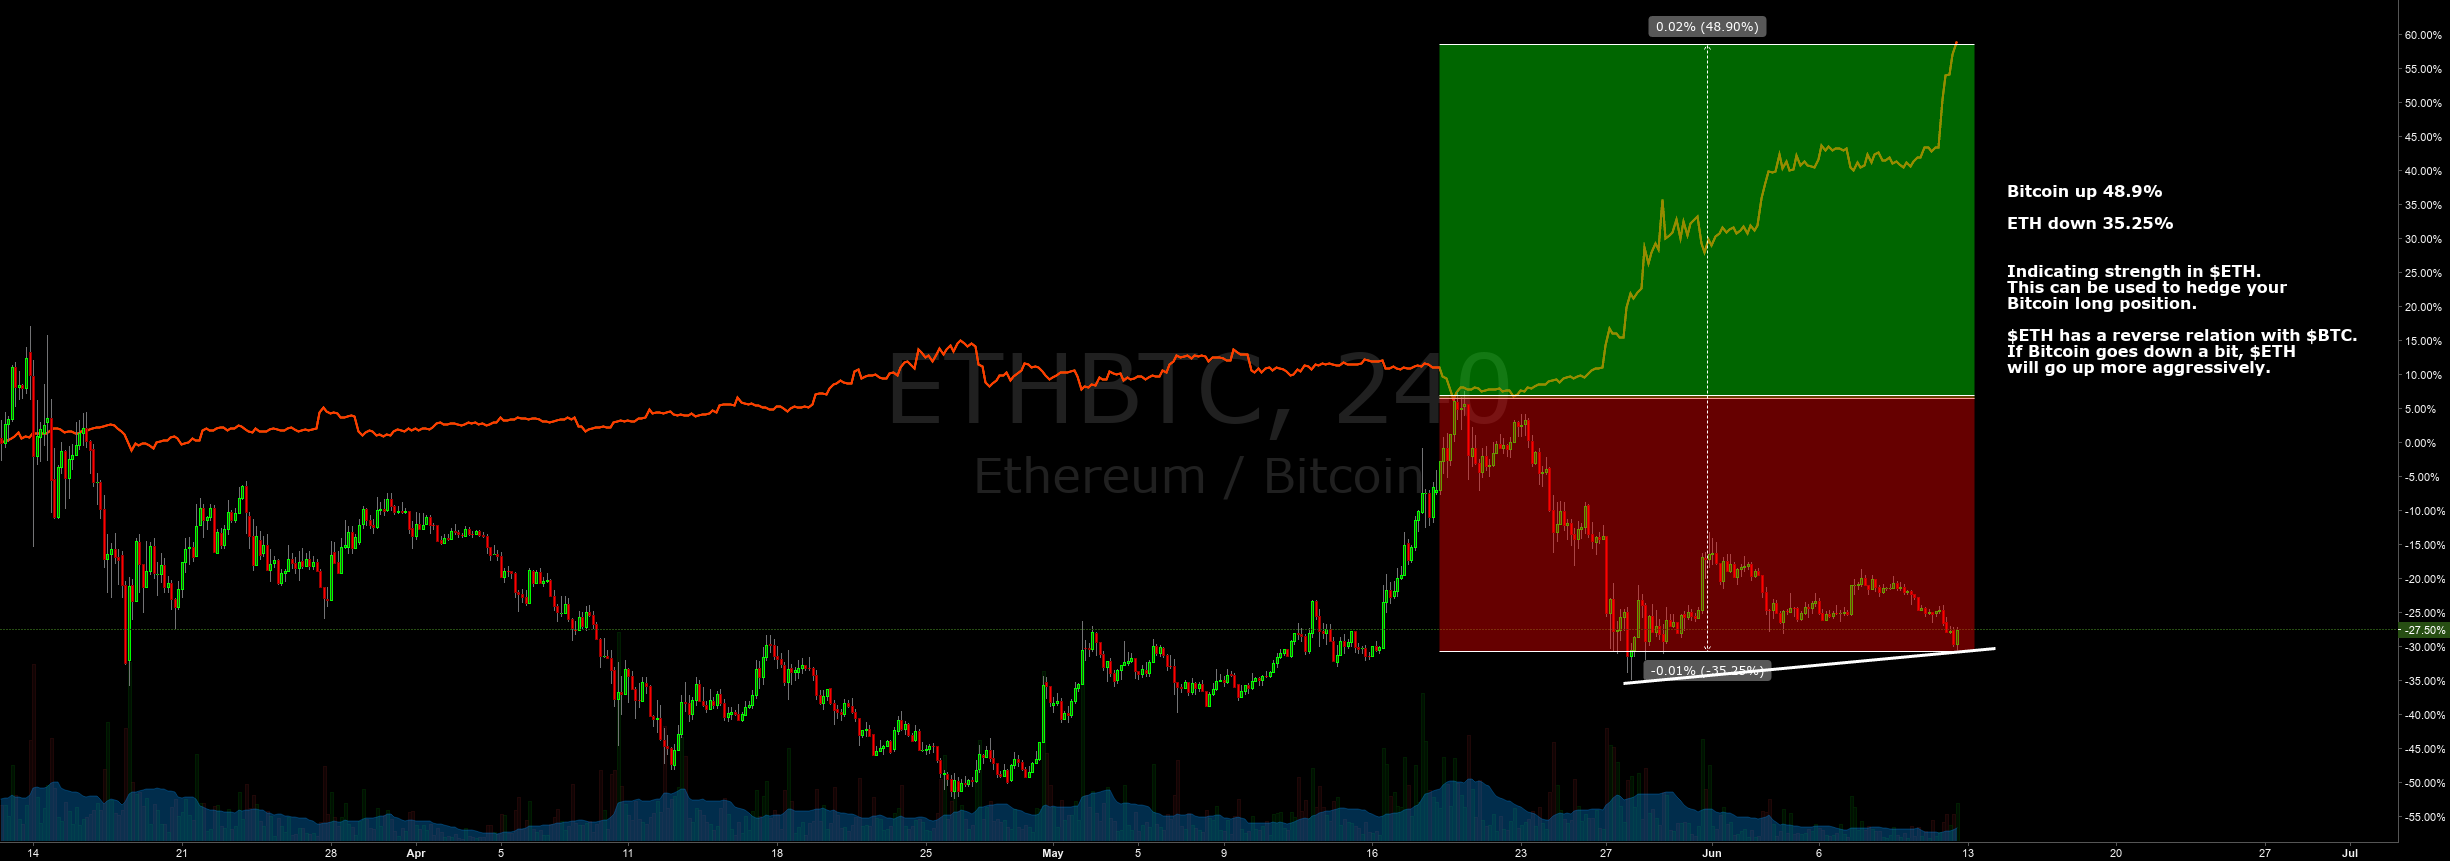 $ETHBTC and Bitcoin Hedge